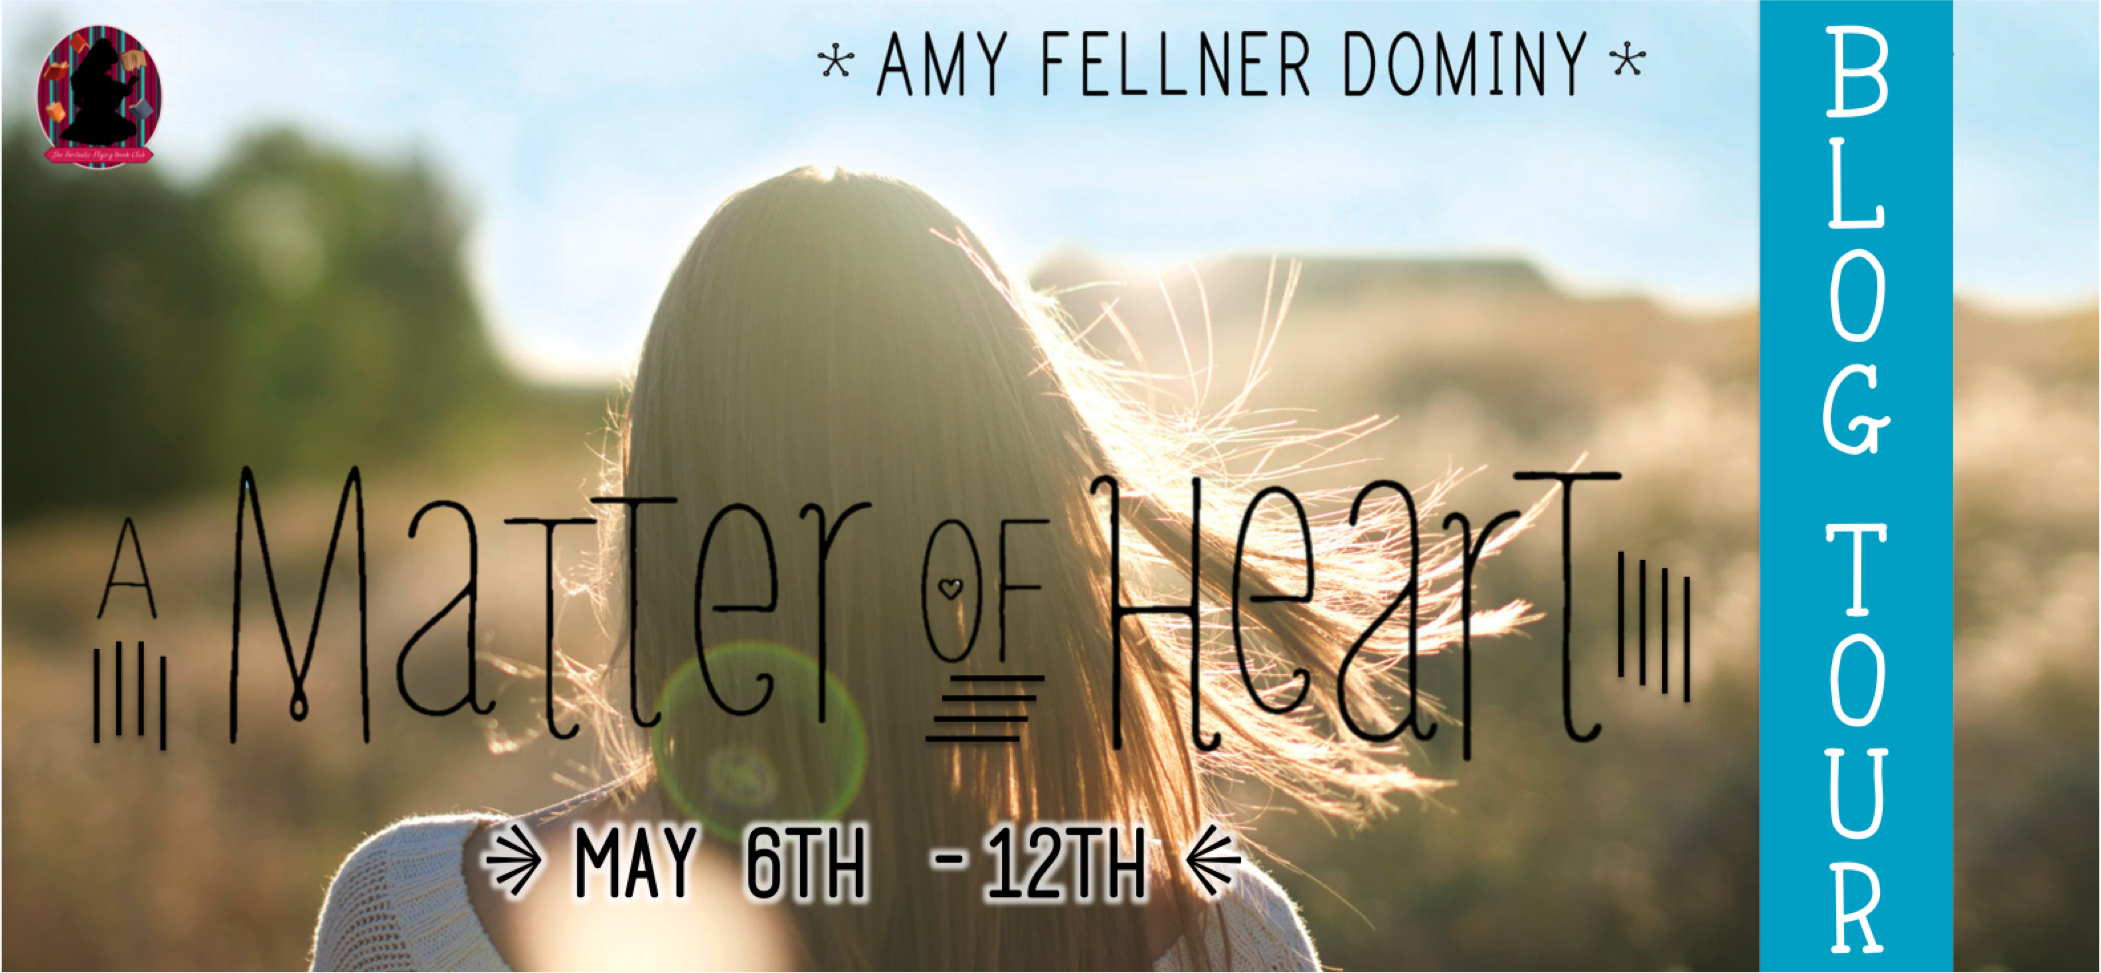 A Matter of Heart by Amy Fellner Dominy - Review & Giveaway